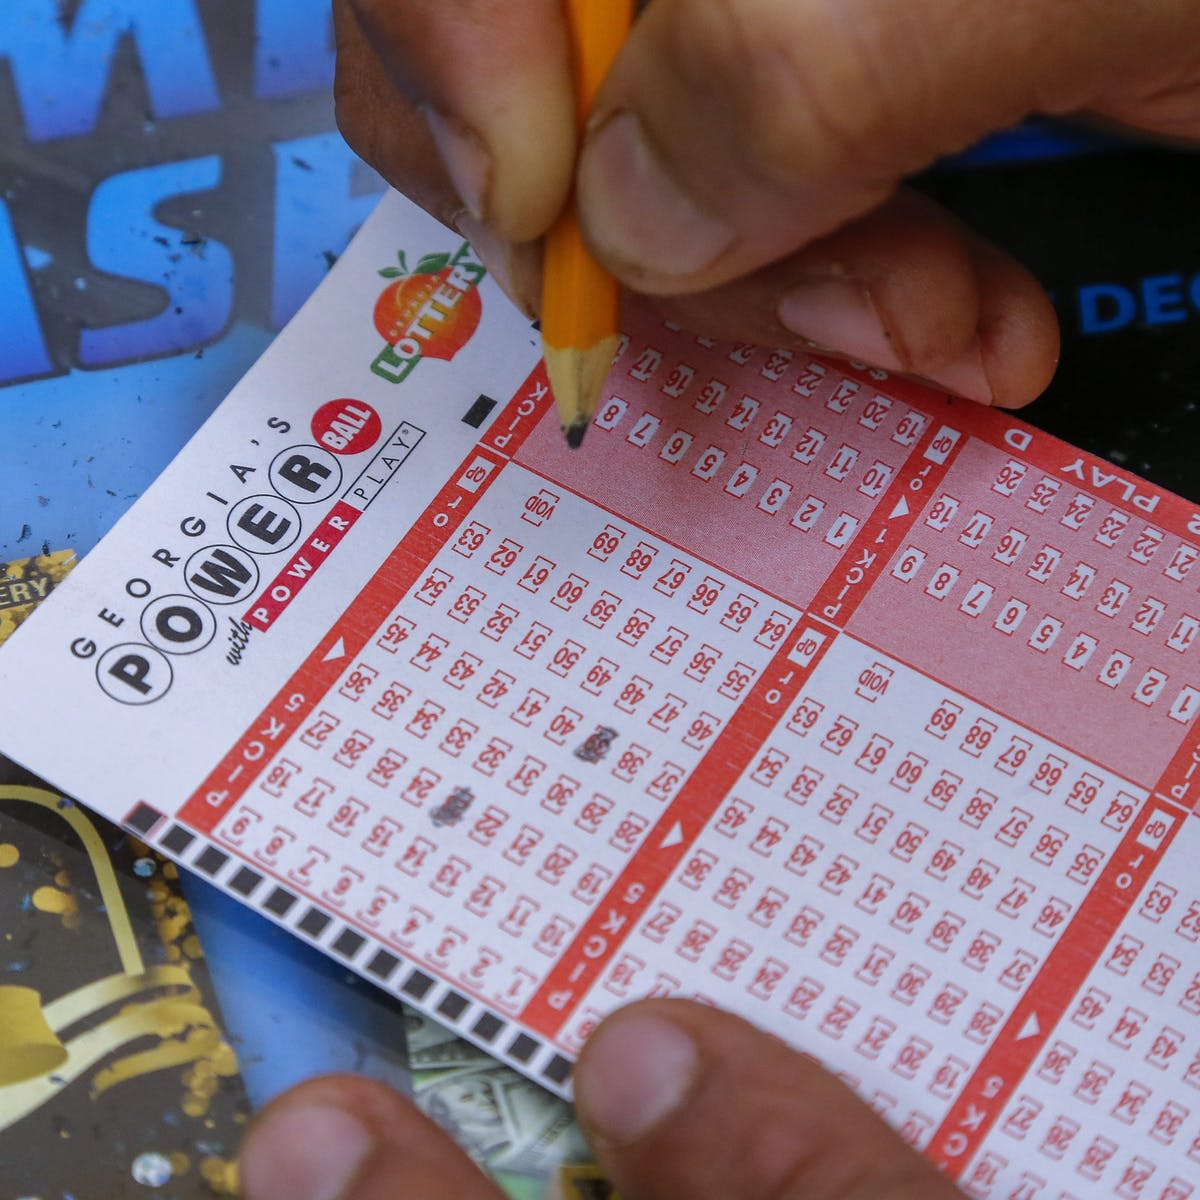 Lottery games to bet on lottostar whats a spread in betting